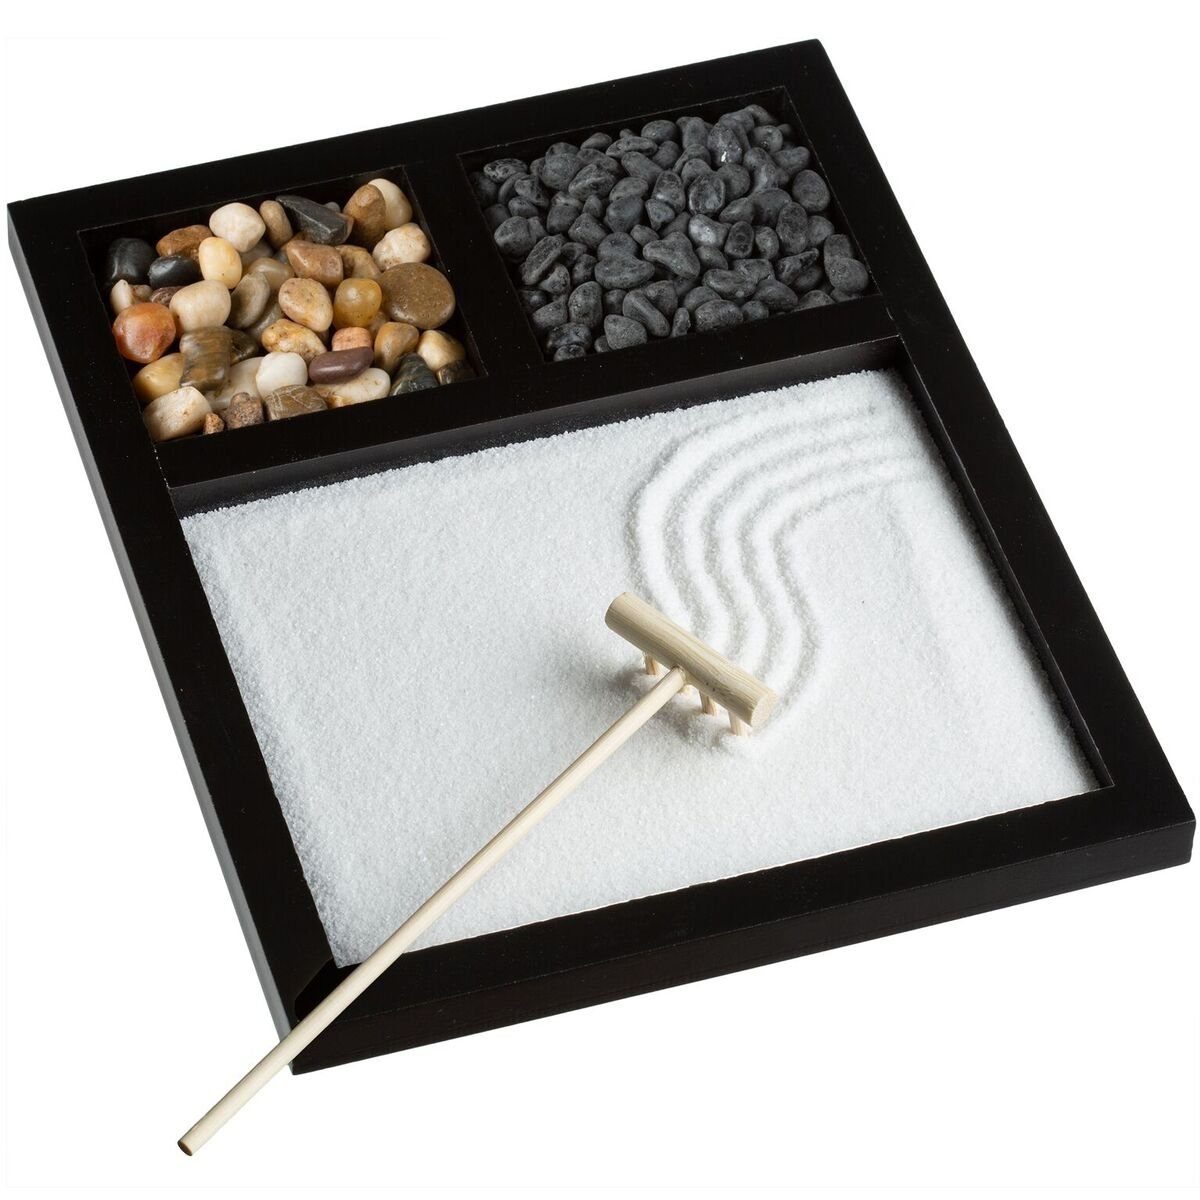 Zen Garden, Meditation Rock and Sand Garden for Desk and Home, 8 x 5 inches Mini Zen Kit, Includes Rake and Natural River Rocks, 4 Pieces, Ideal for Office, Zen Corner